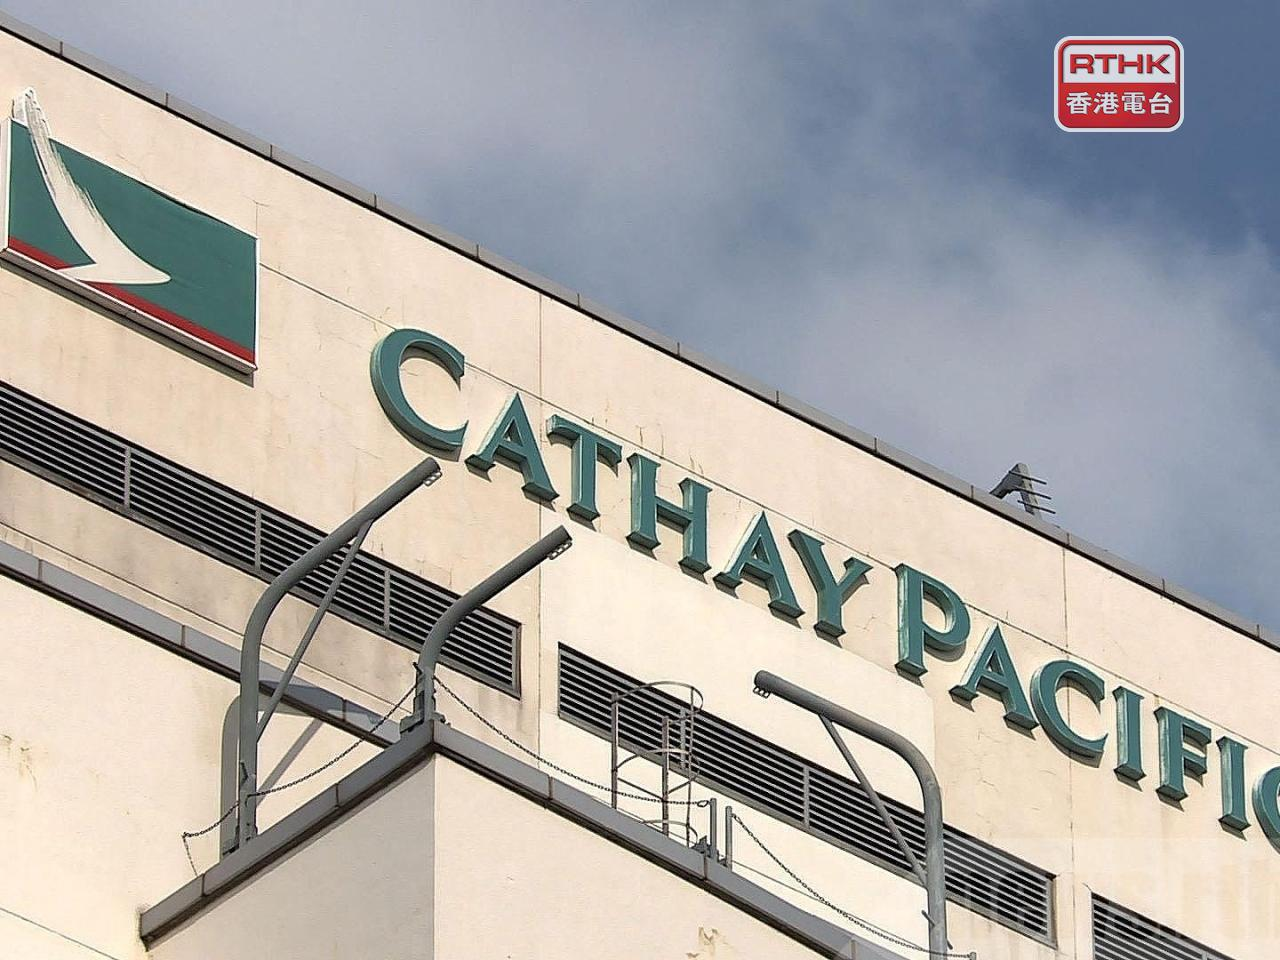 Cathay Pacific did not say how many staff members were sacked for not getting vaccinated. File photo: RTHK